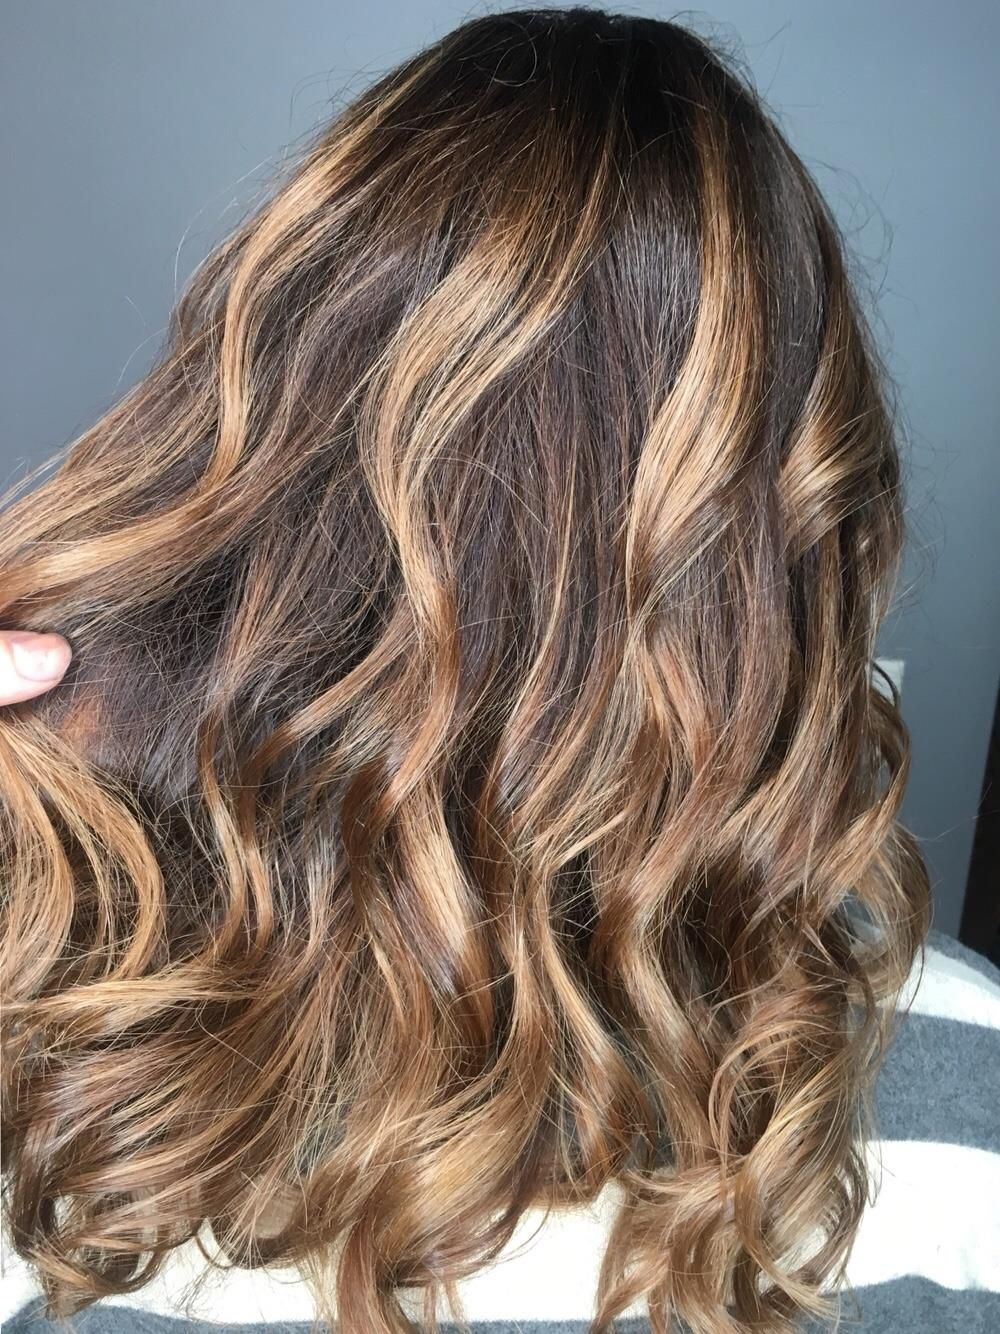 Pin on Hair Cuts, Color & Style ideas for Women